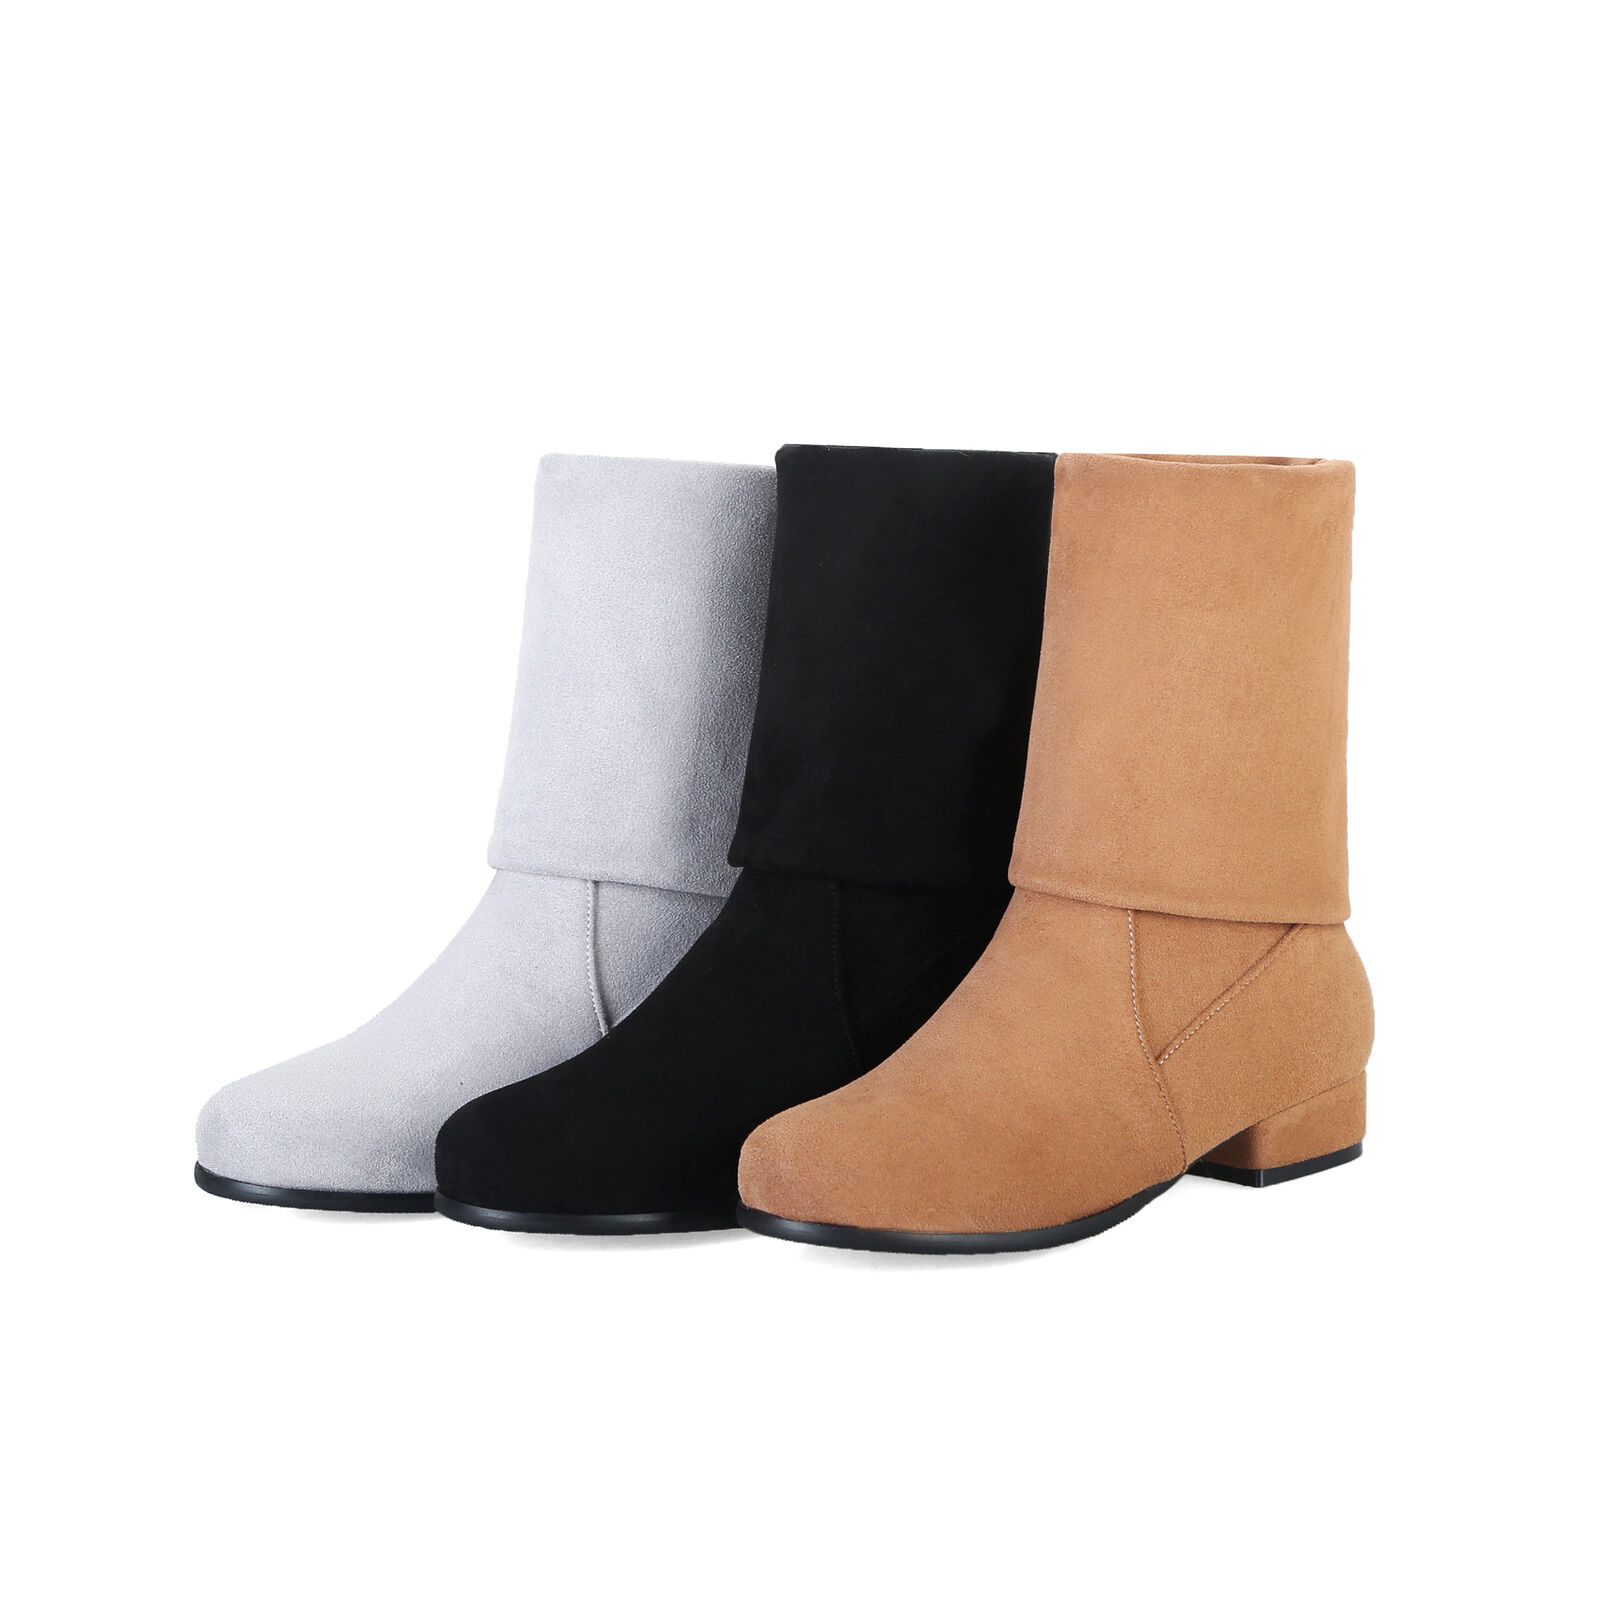 Women's Cuban Heel Mid Calf Boots Suede Fabric Round Toe Plus Size shoes